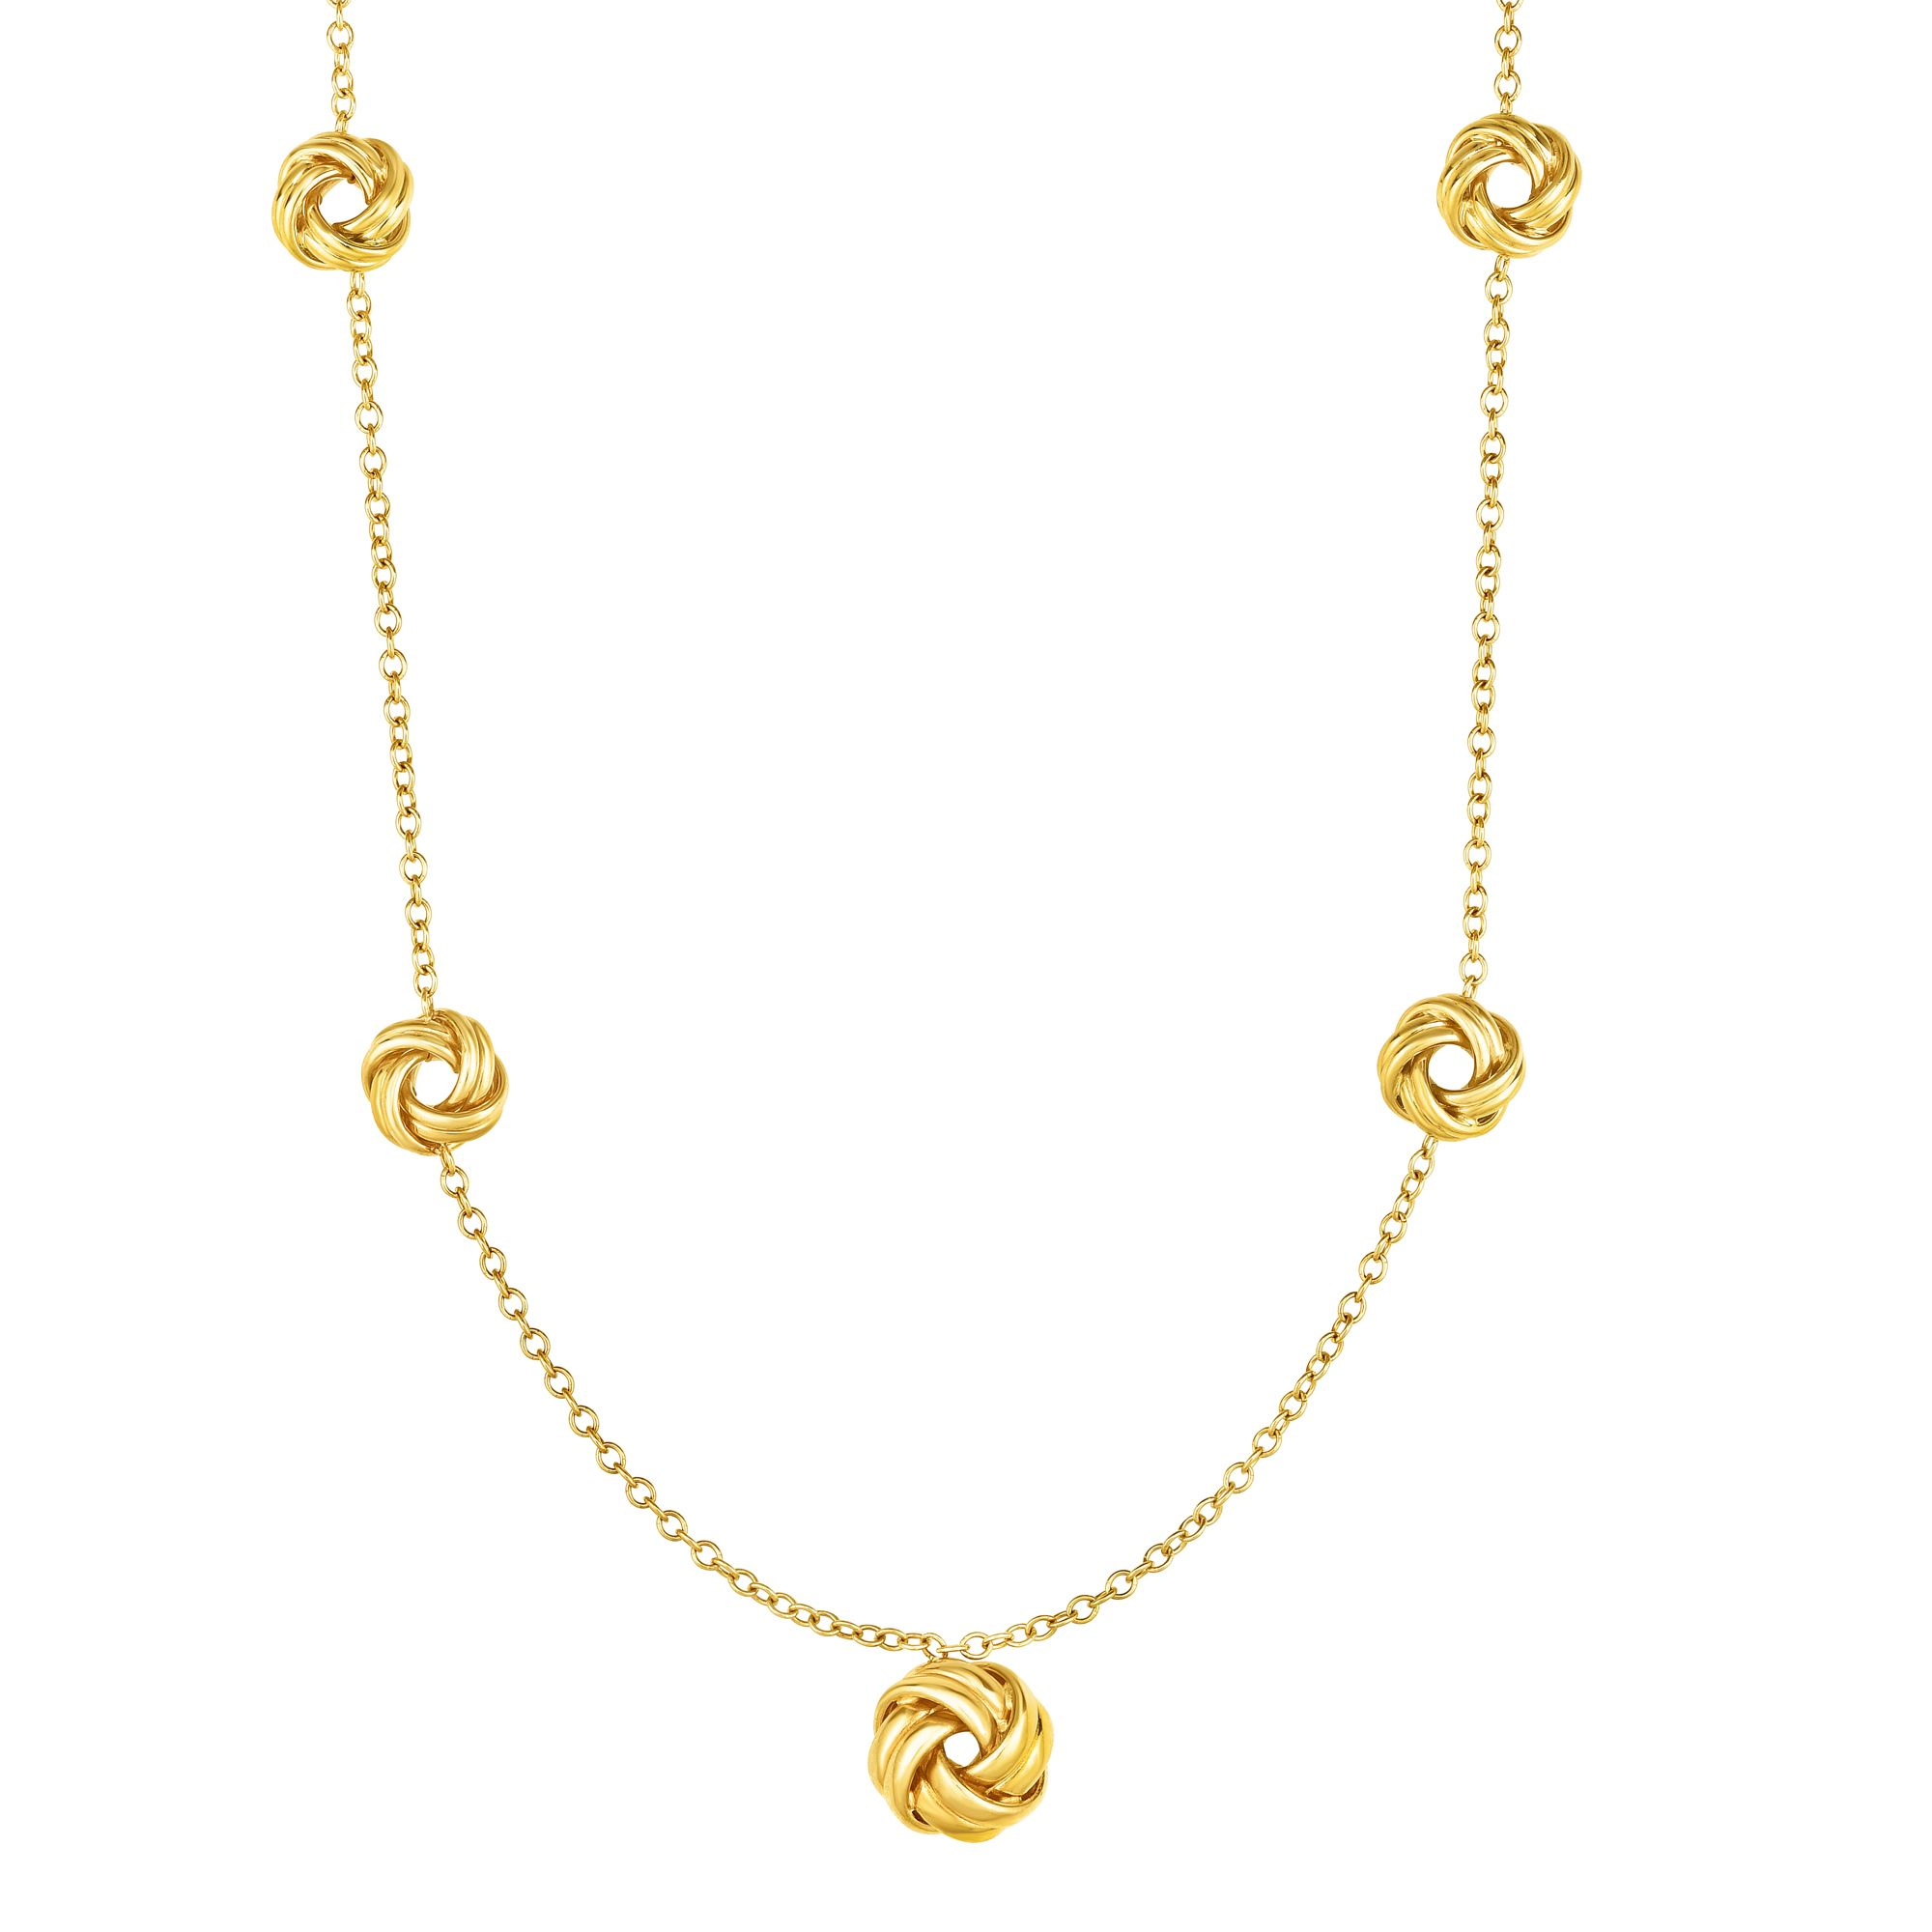 """10k Yellow Gold Fancy Love Knot Stationed Link Chain Necklace, Lobster Clasp-18"""" by JewelStop"""